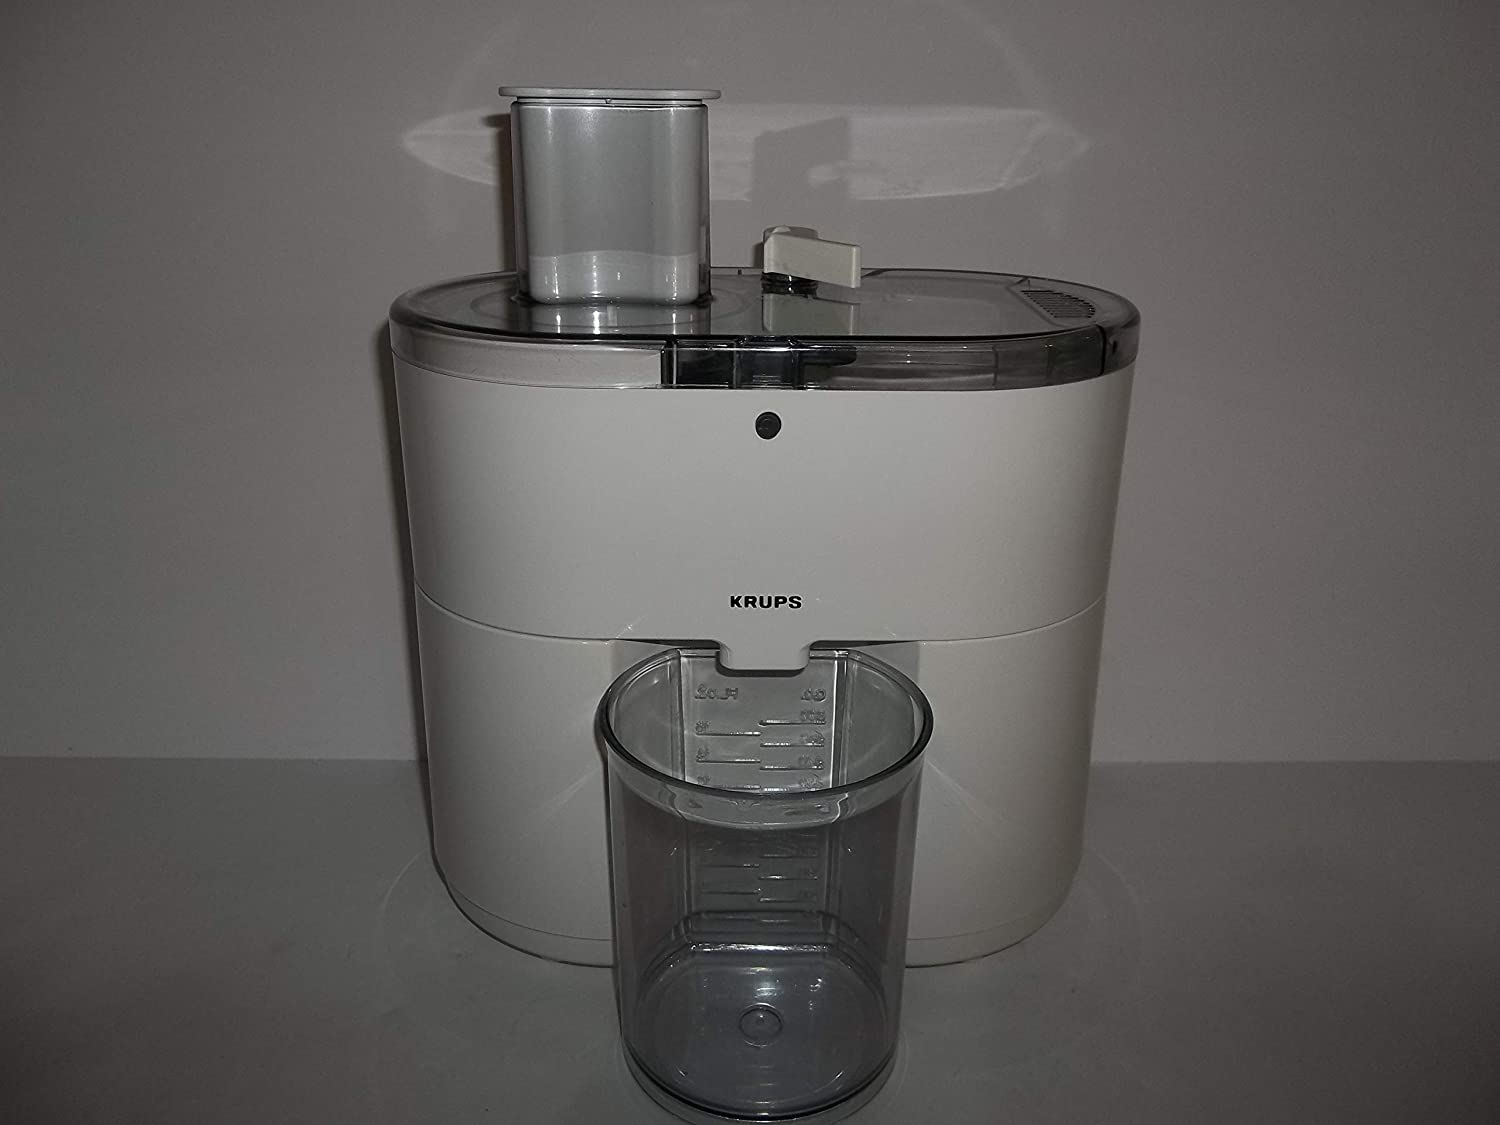 Krups VitaMight Large Capacity Juice Extractor